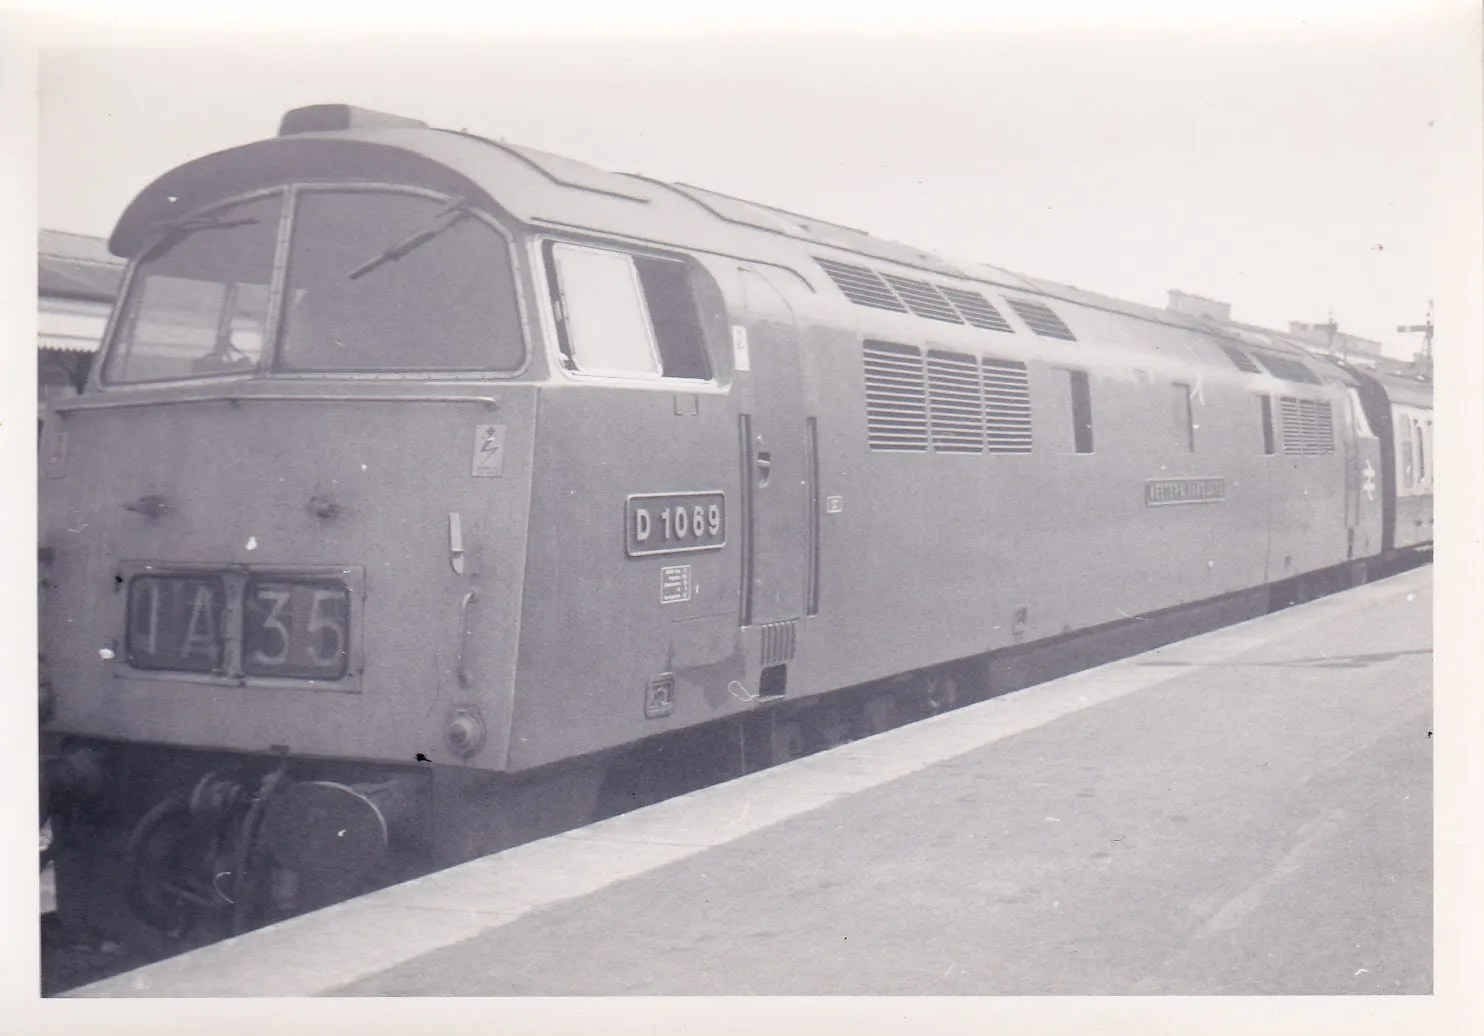 Class 52 1069 Western Vanguard diesel locomotive on up train at Exeter St Davids railway depot June 1971